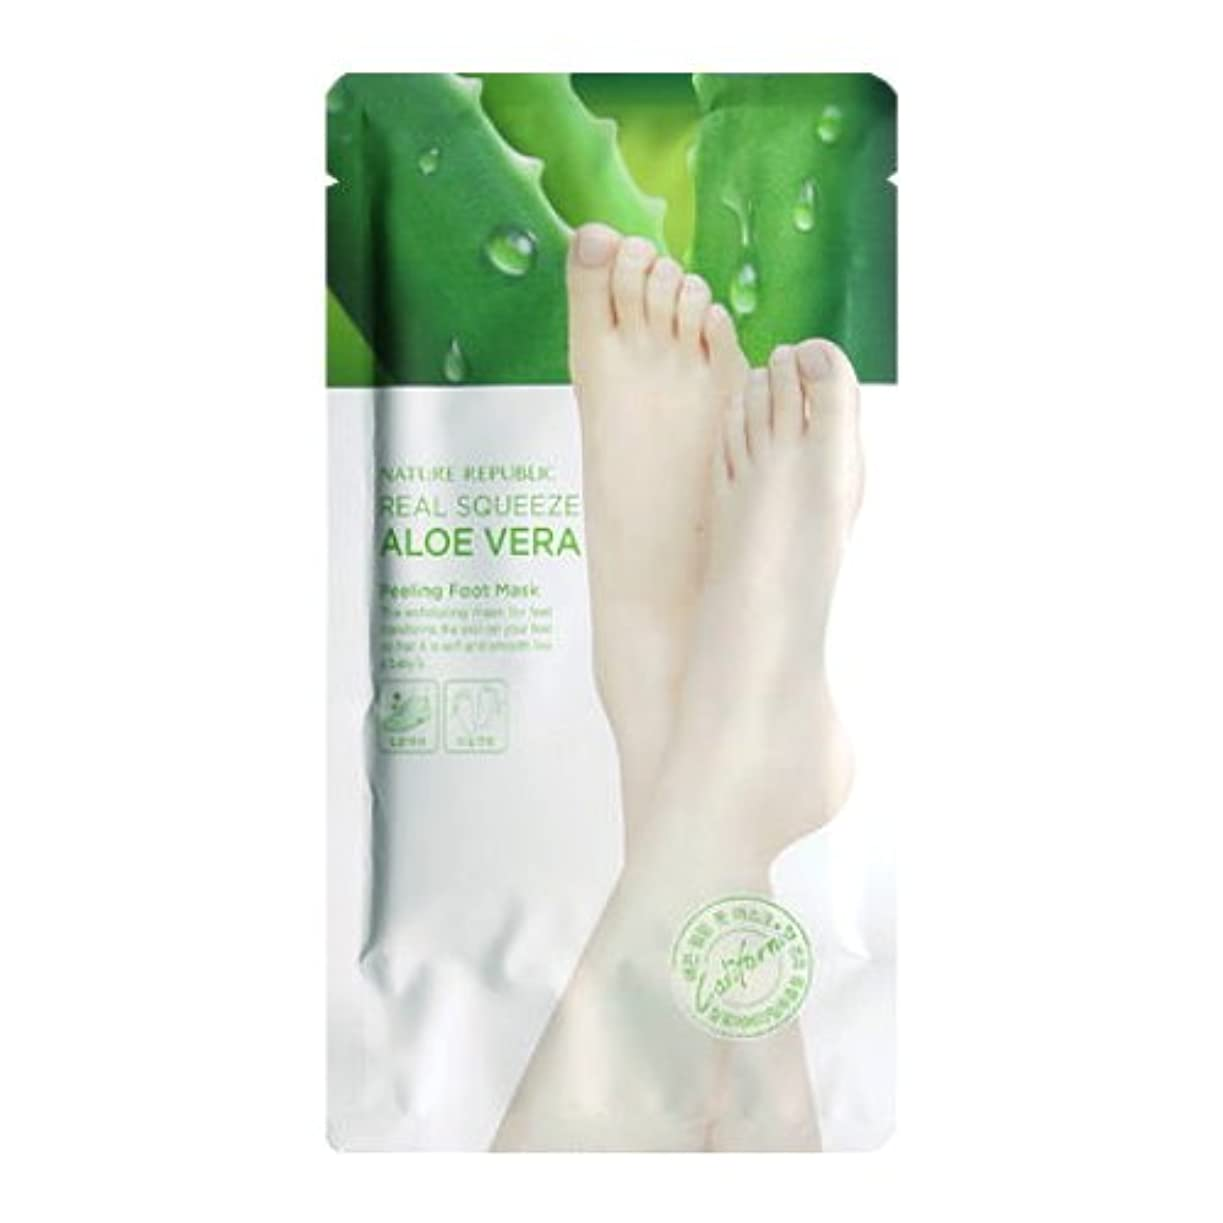 財政私たちスタックNATURE REPUBLIC Real Squeeze Aloe Vera Peeling Foot Mask (並行輸入品)